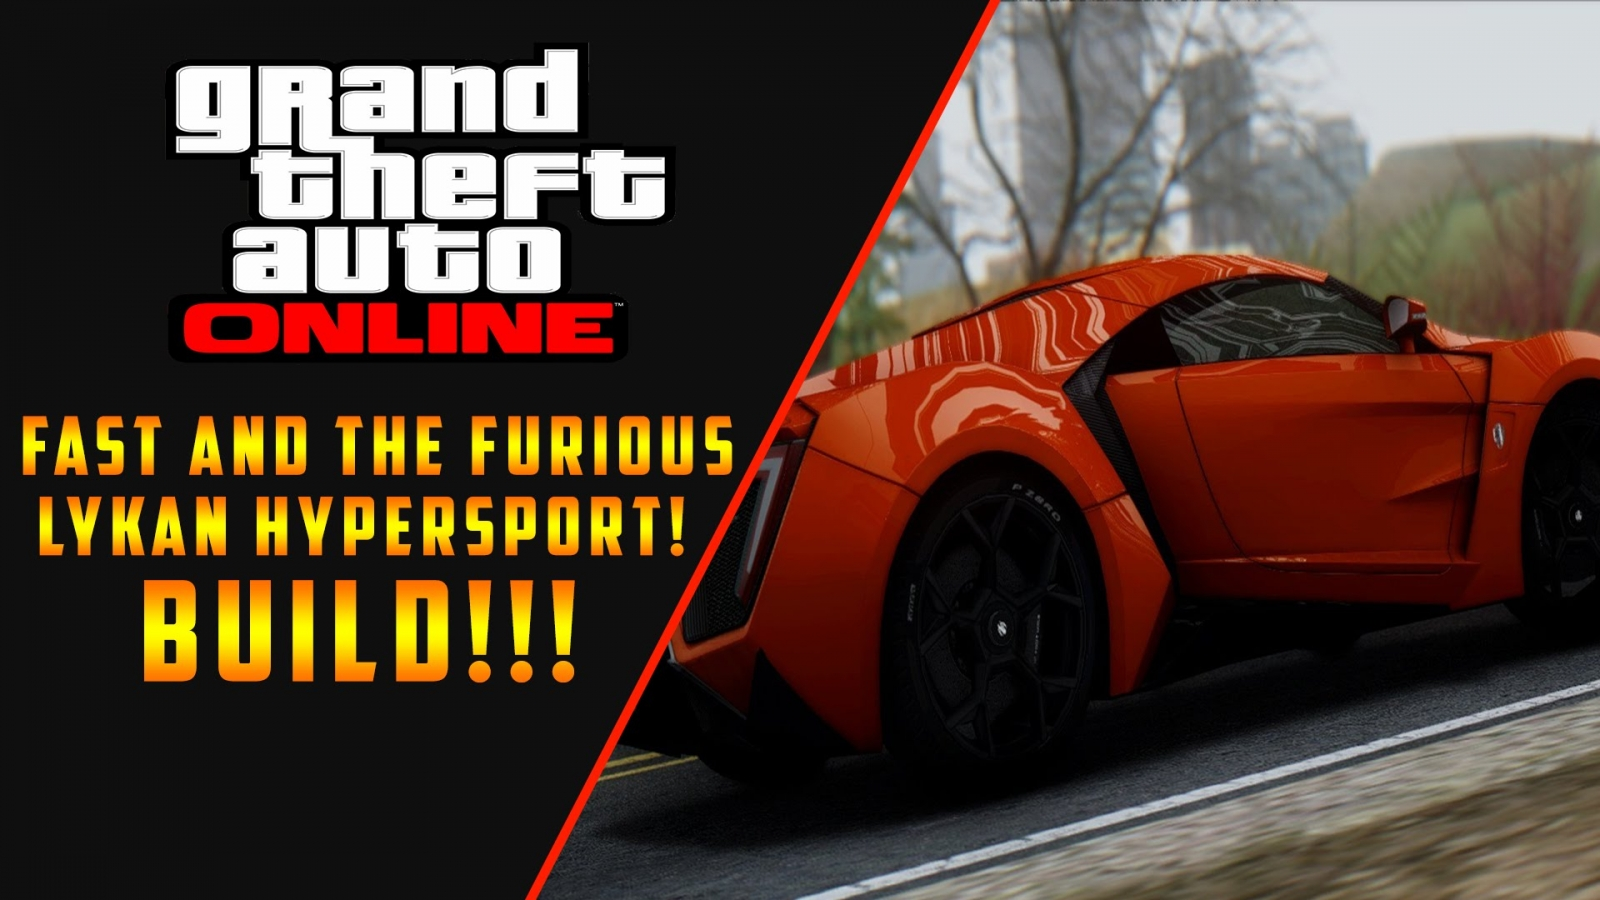 Gta 5 Online Qna: Fast And Furious Cars, Hypersport Vehicles, Heists And  More